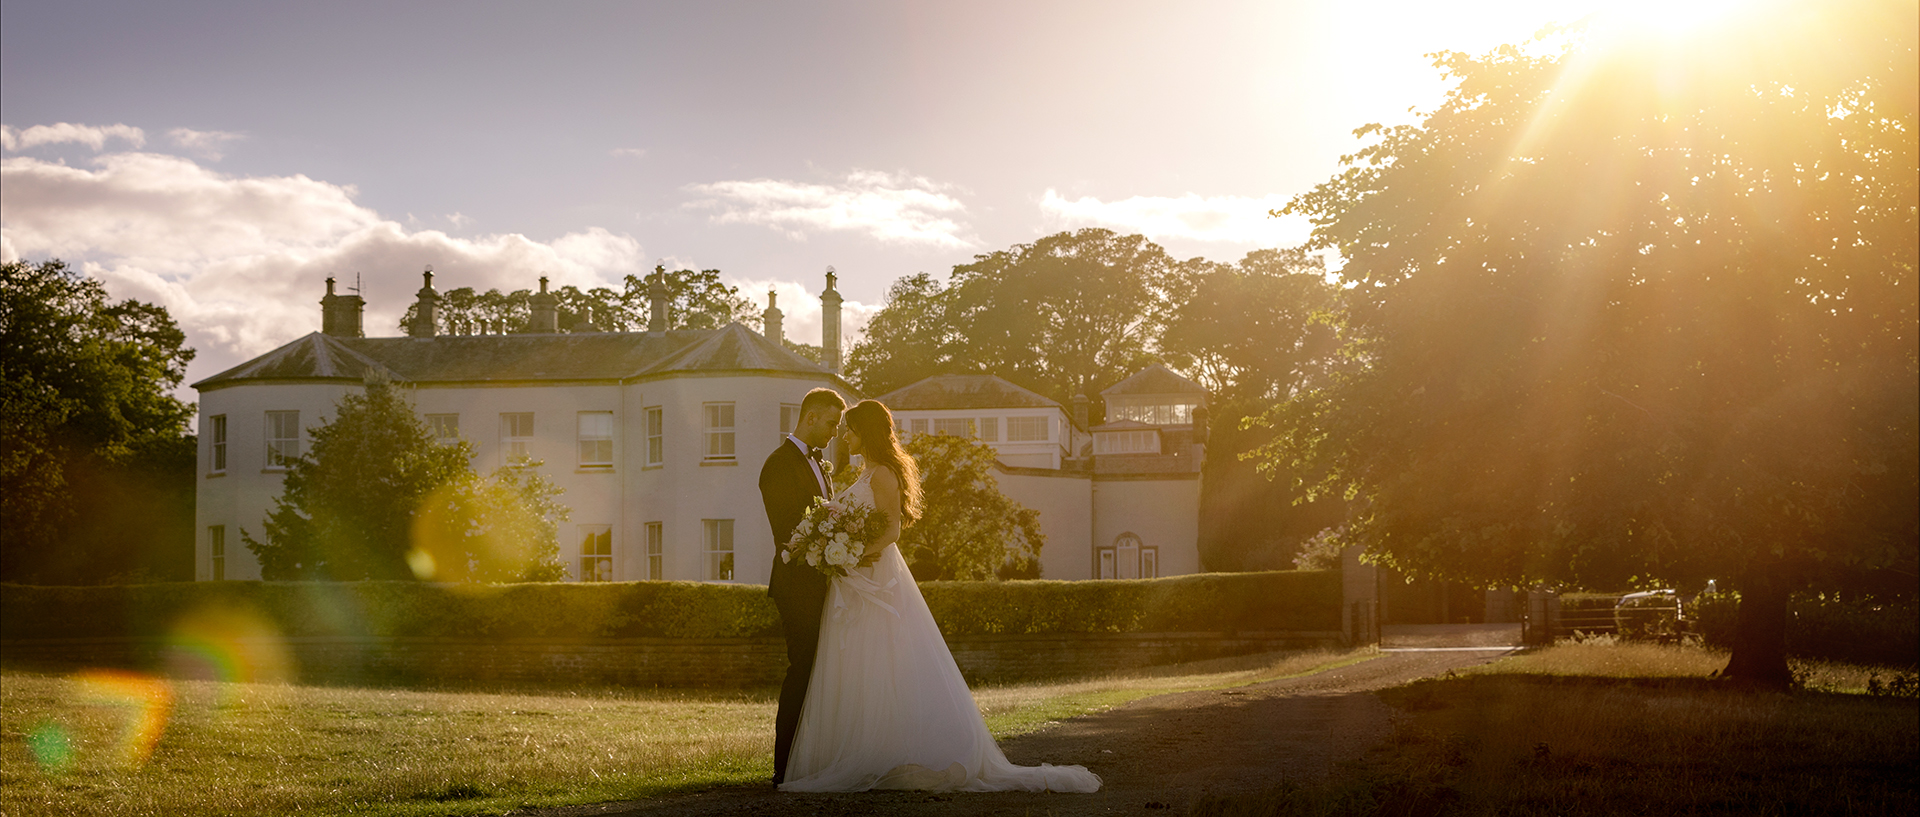 Rachel & James Wedding at Lartington Hall